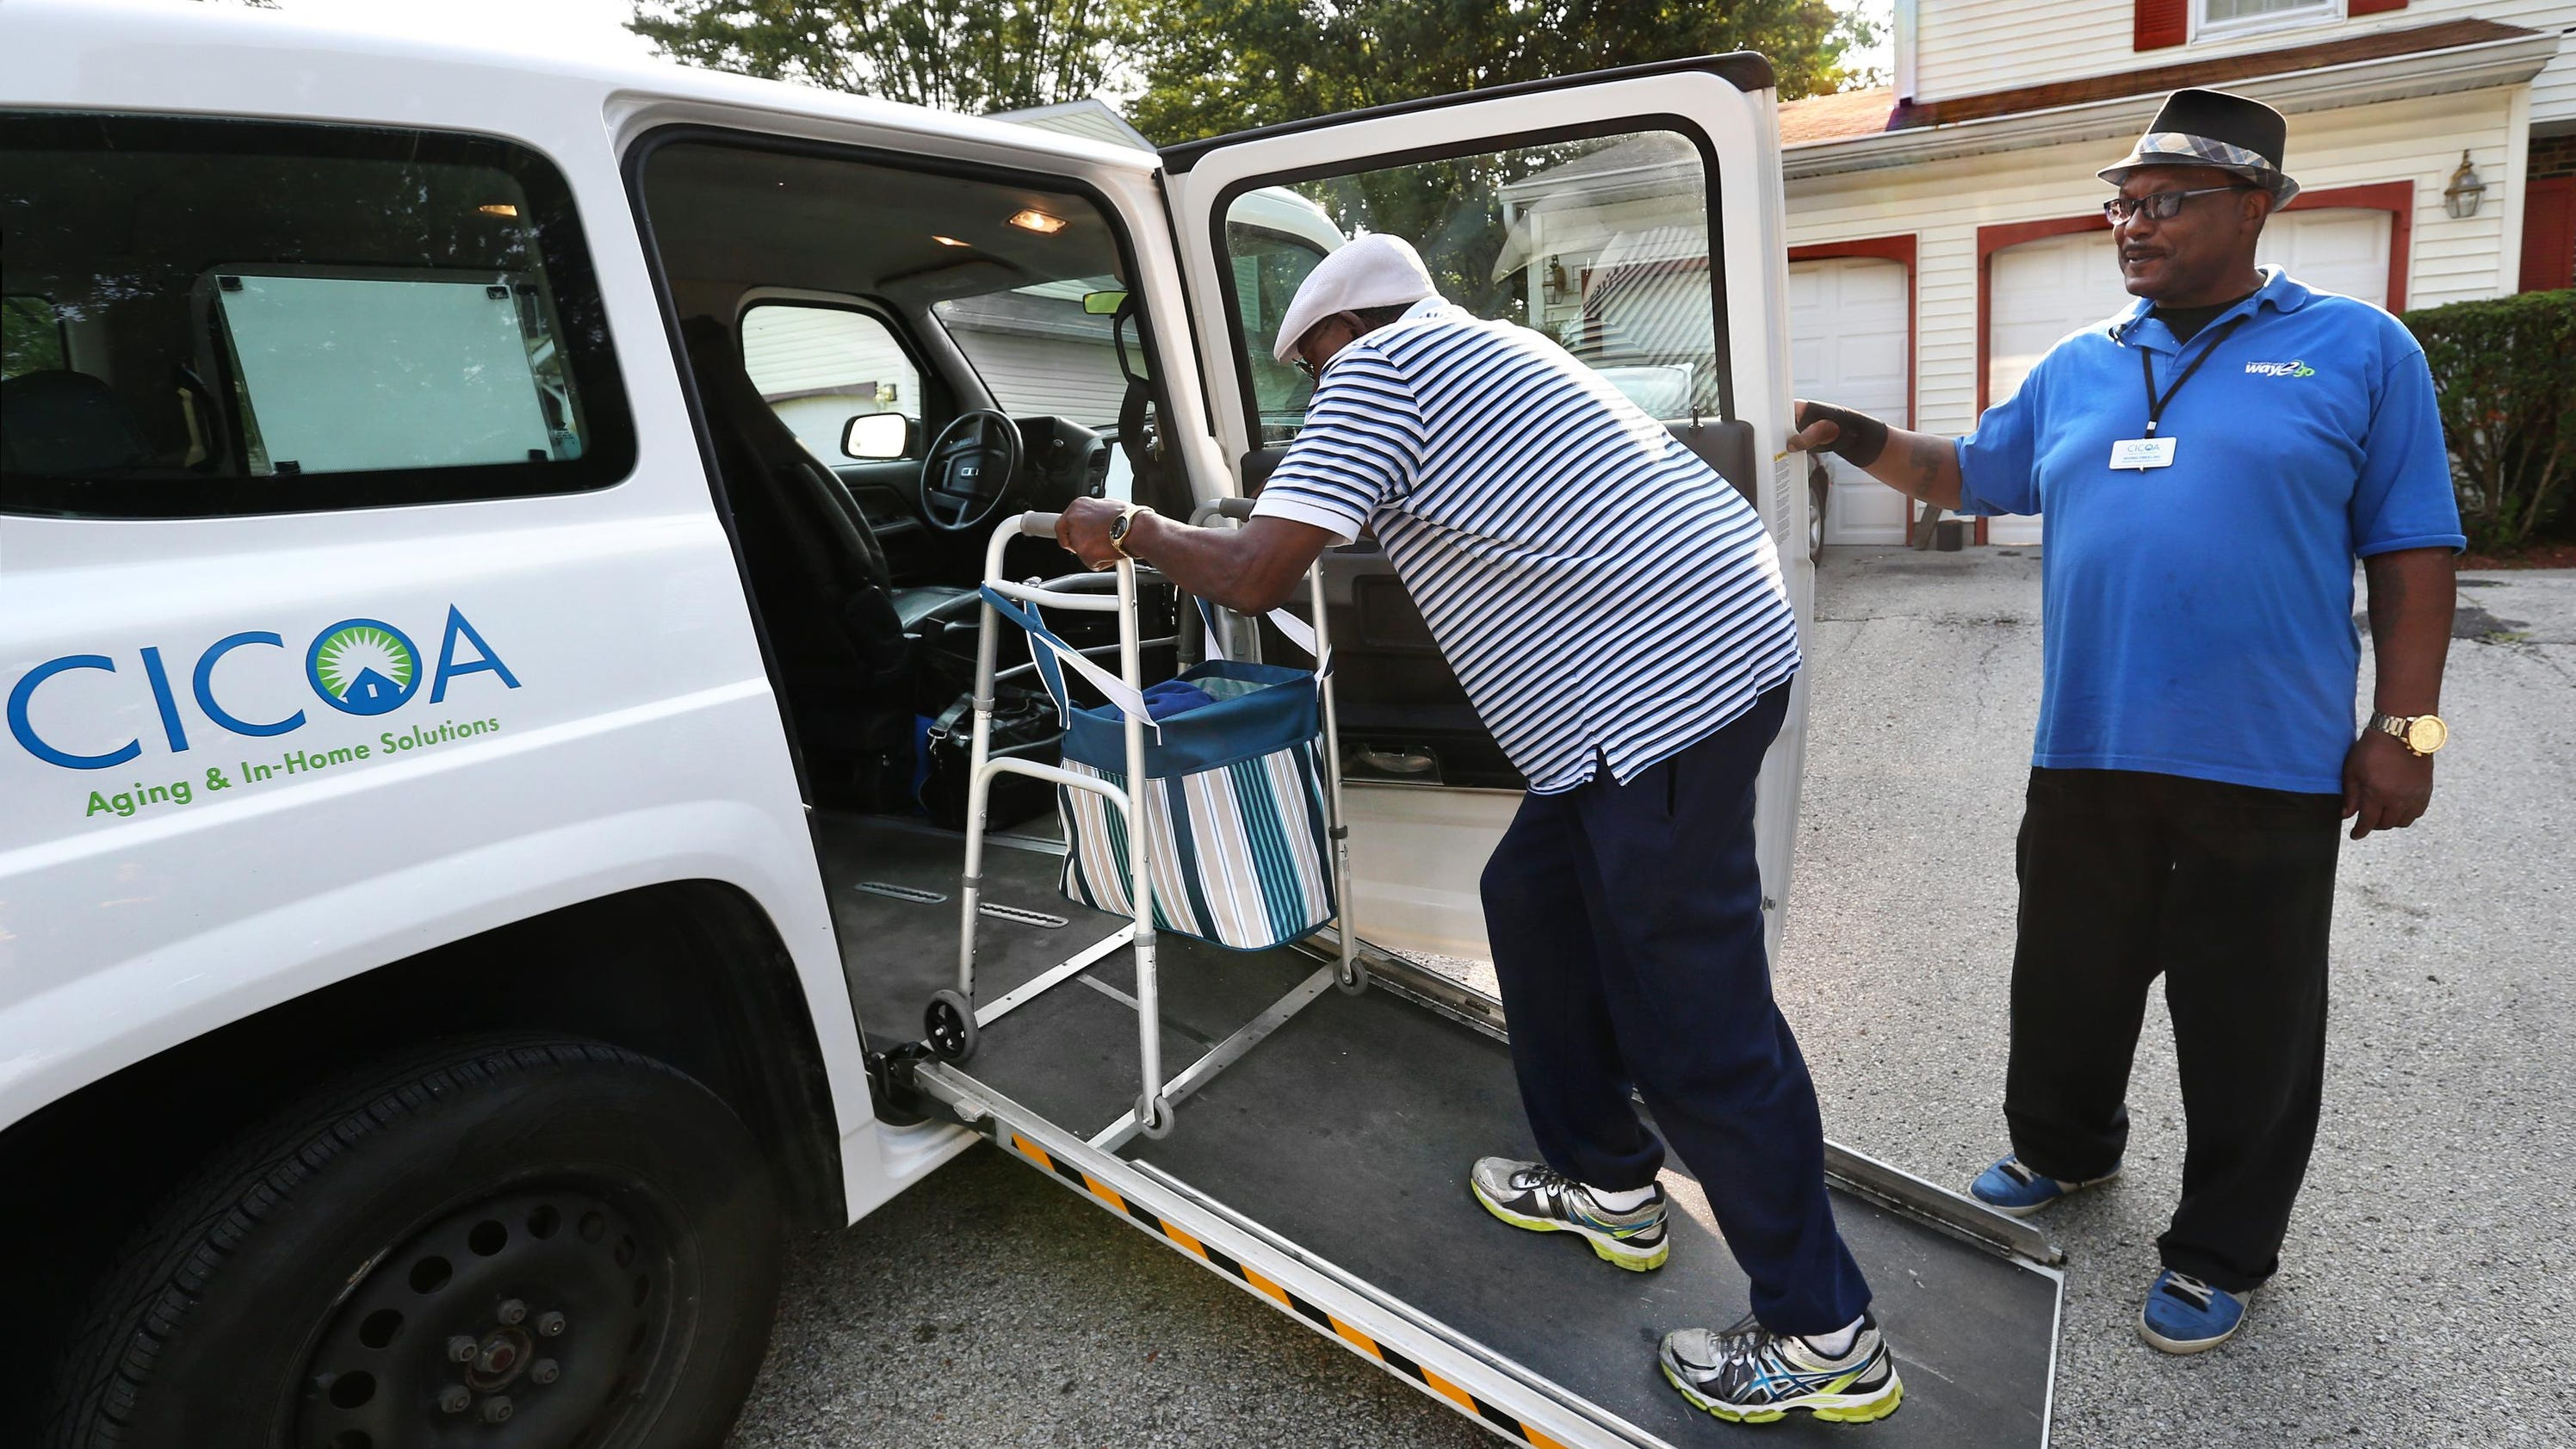 waygo paratransit service seeks funding to meet growing need